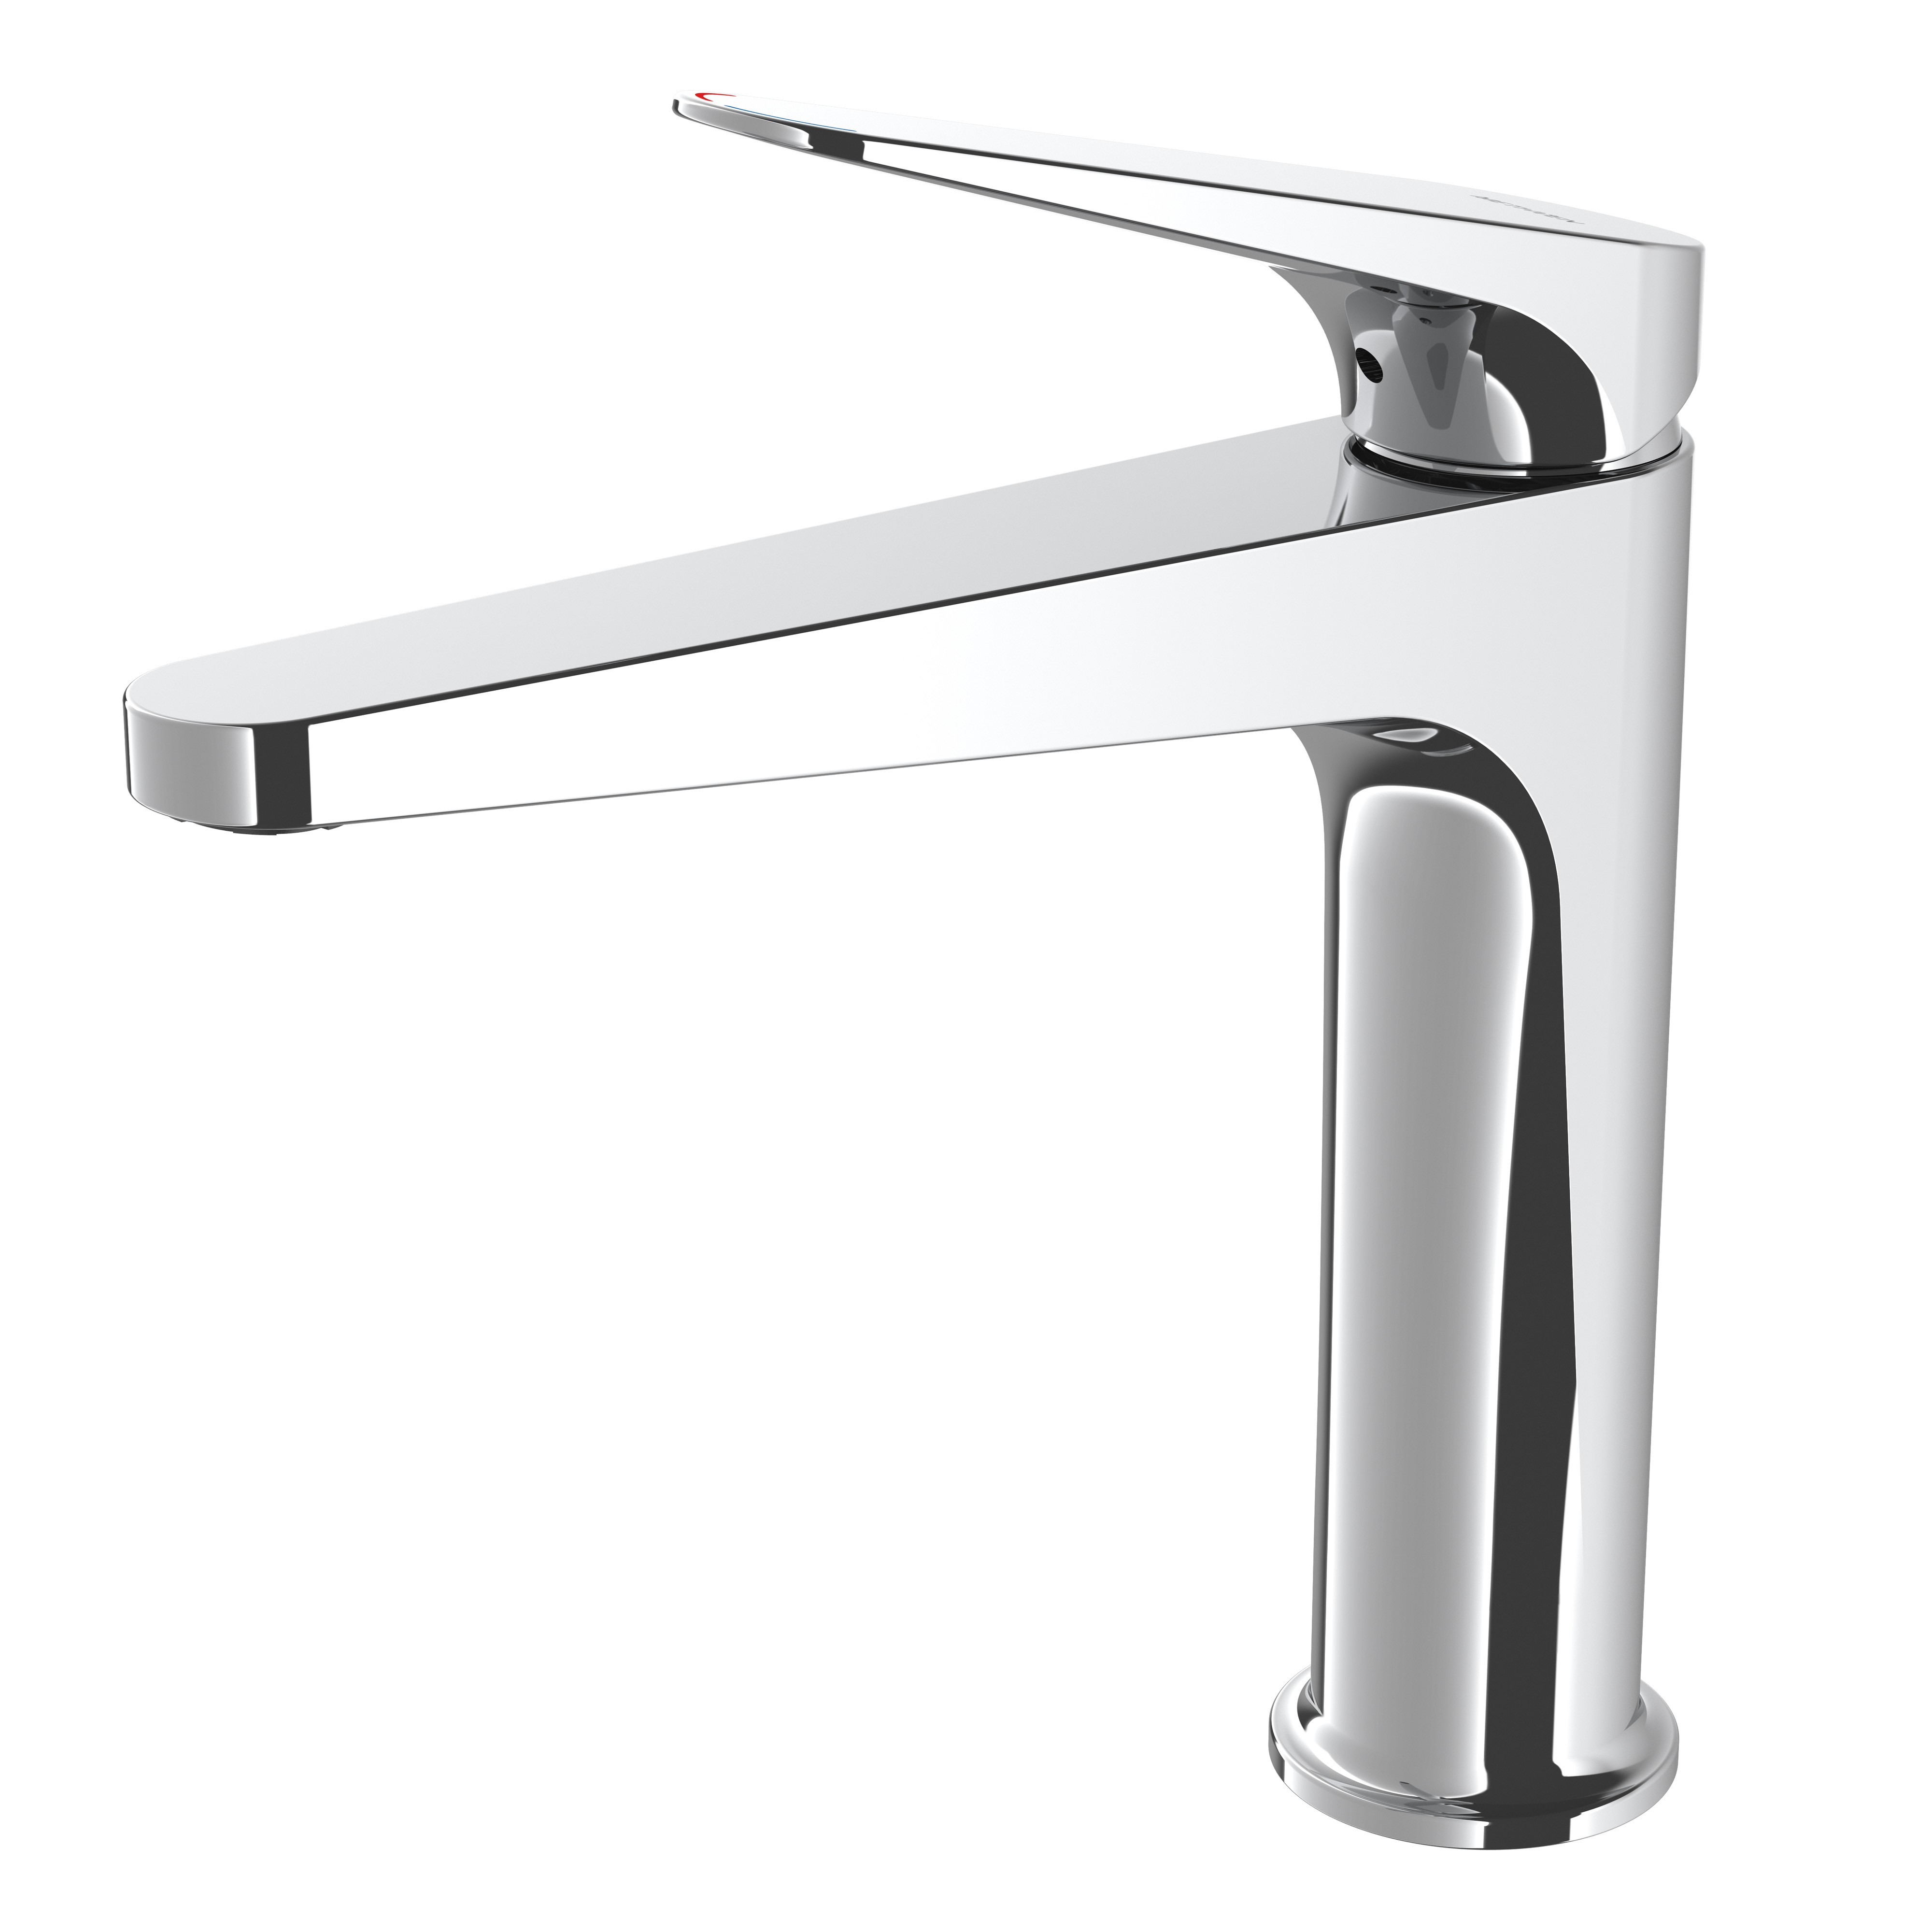 MAKU SINK MIXER CHROME